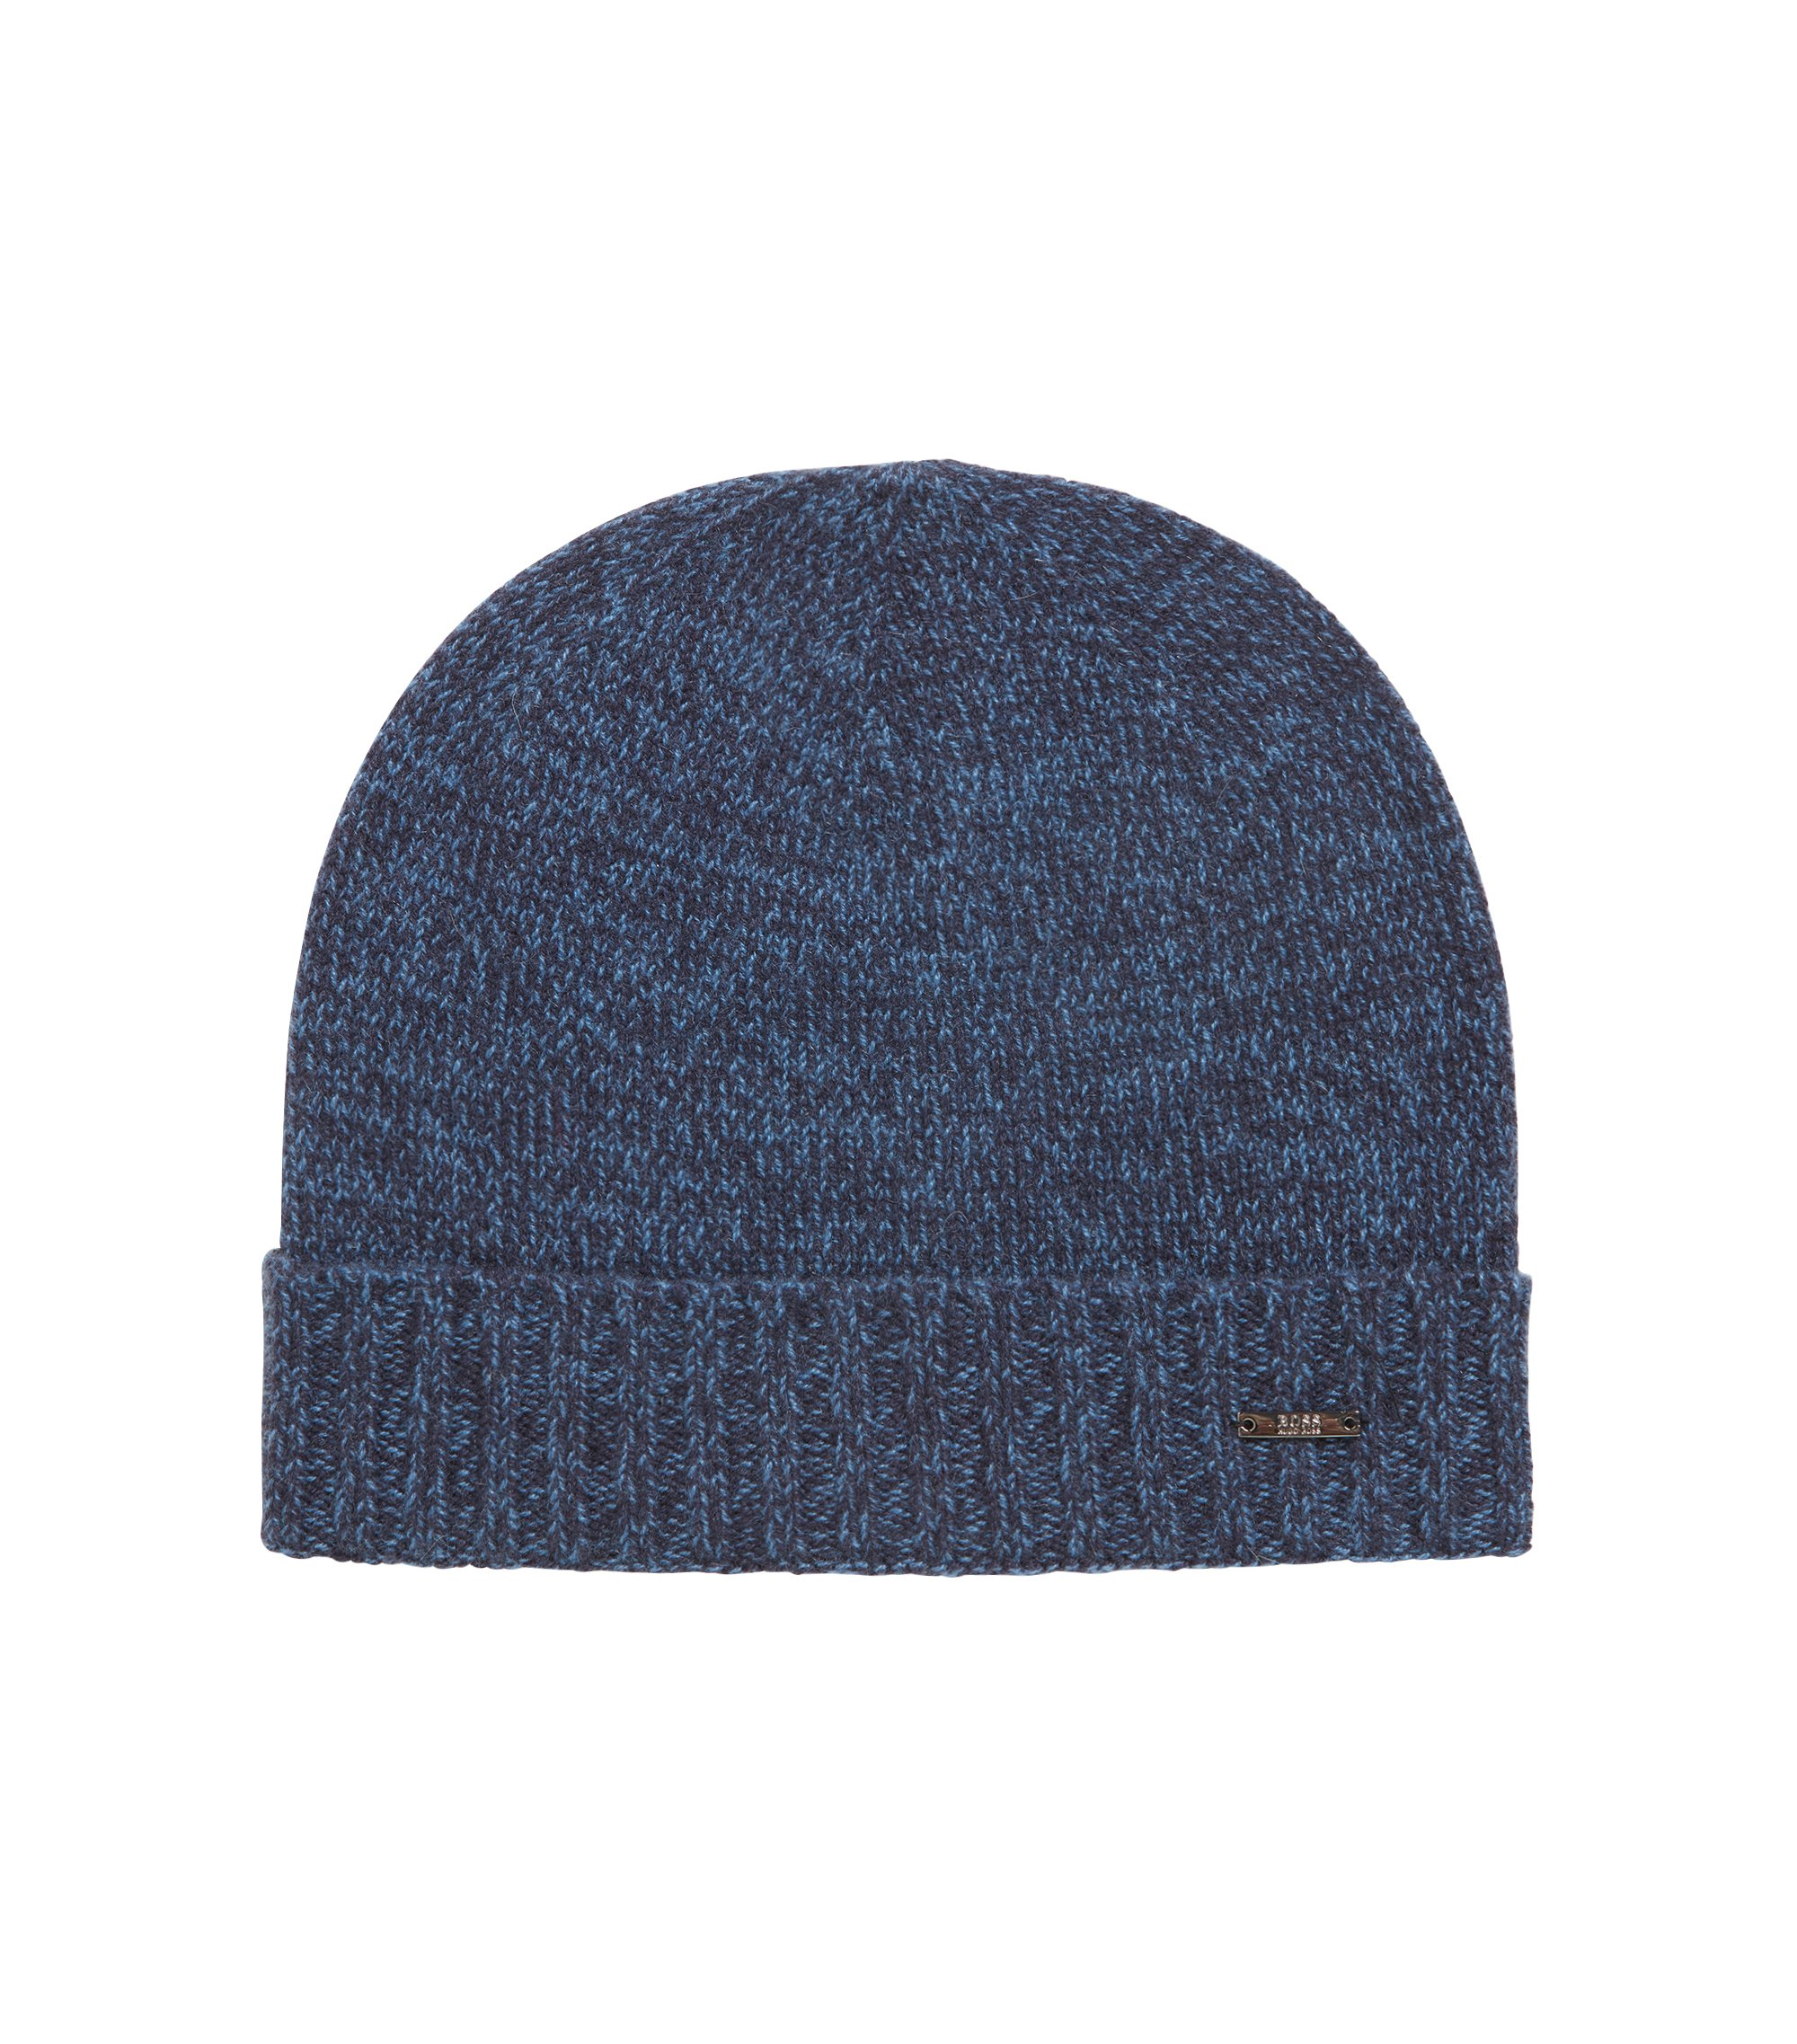 Beanie hat in mouliné cashmere, Open Blue